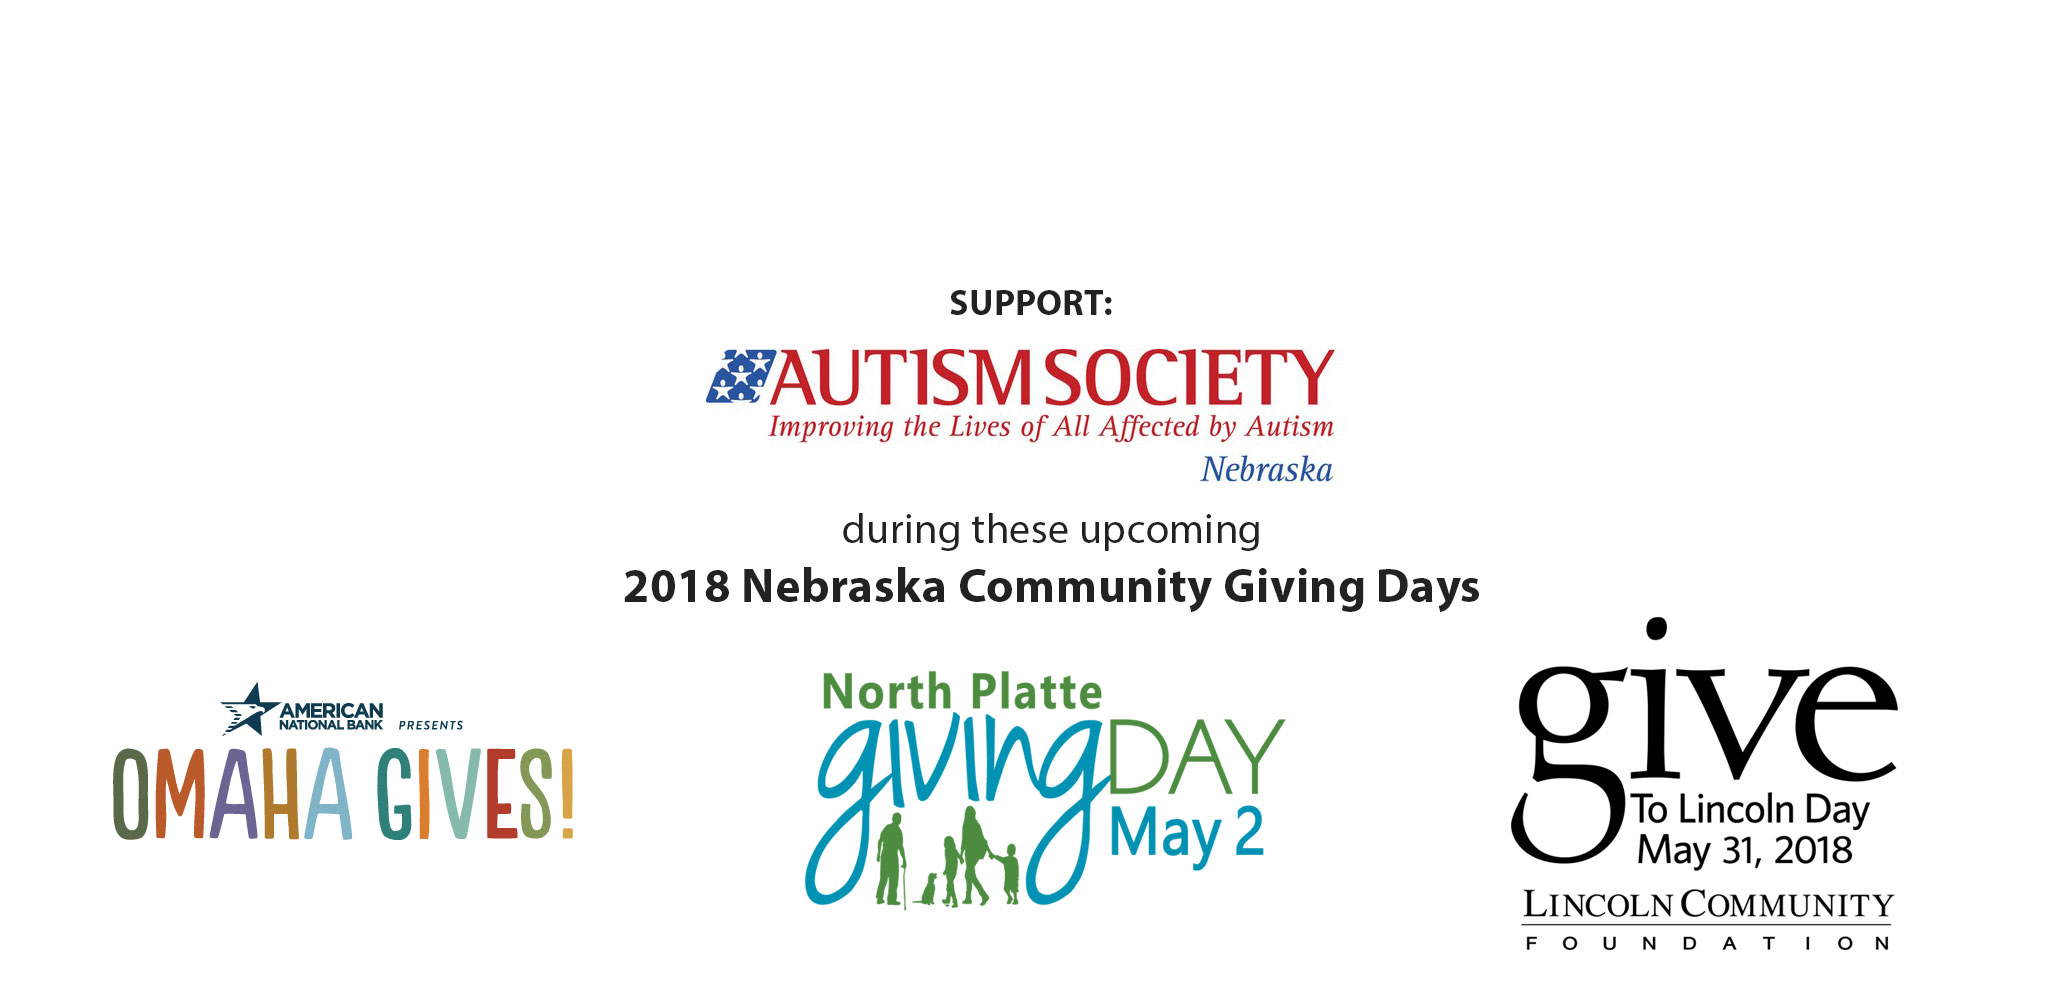 Support ASN through these three giving days, Omaha Gives on May 23, North Platte Giving Day on May 2, and Give to Lincoln Day on May 31!